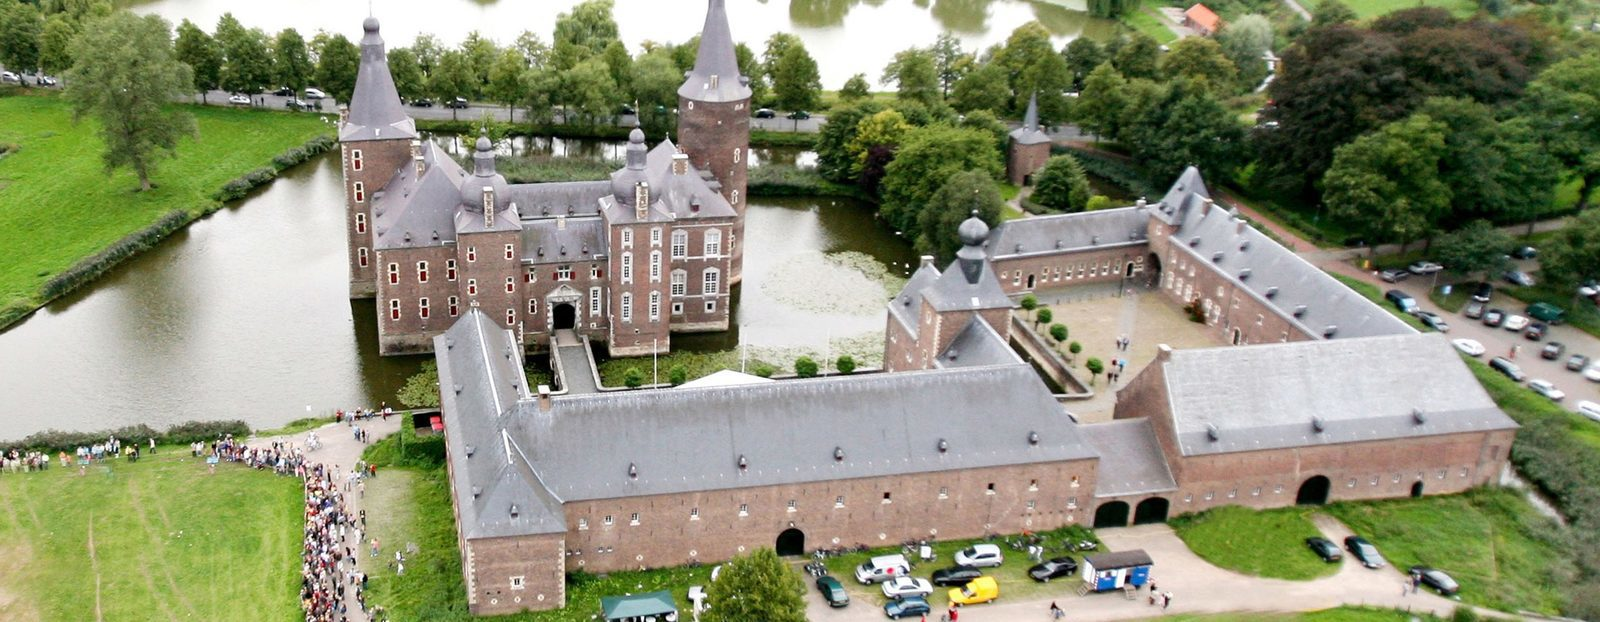 The castle of Hoensbroek